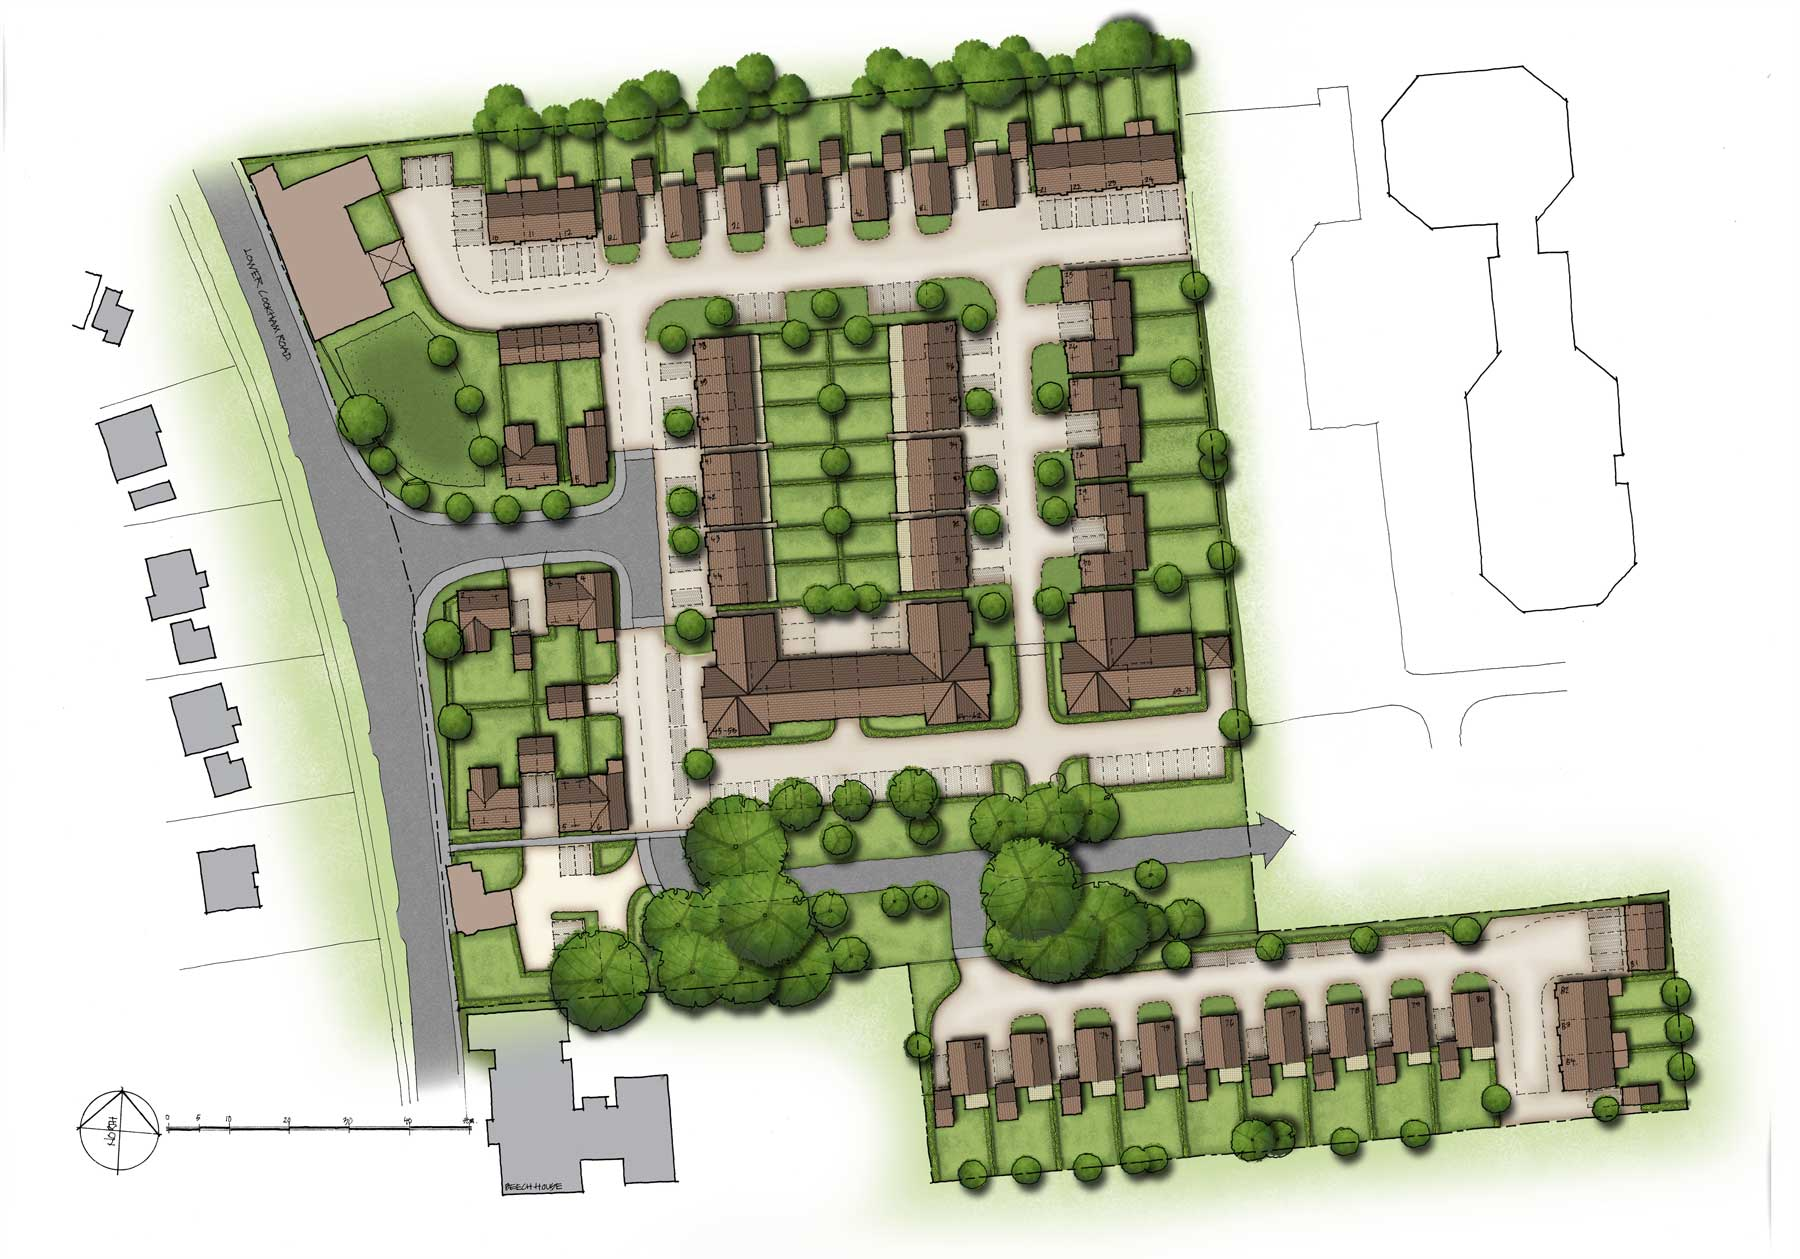 services-urban-design-masterplanning-ascot-design.jpg